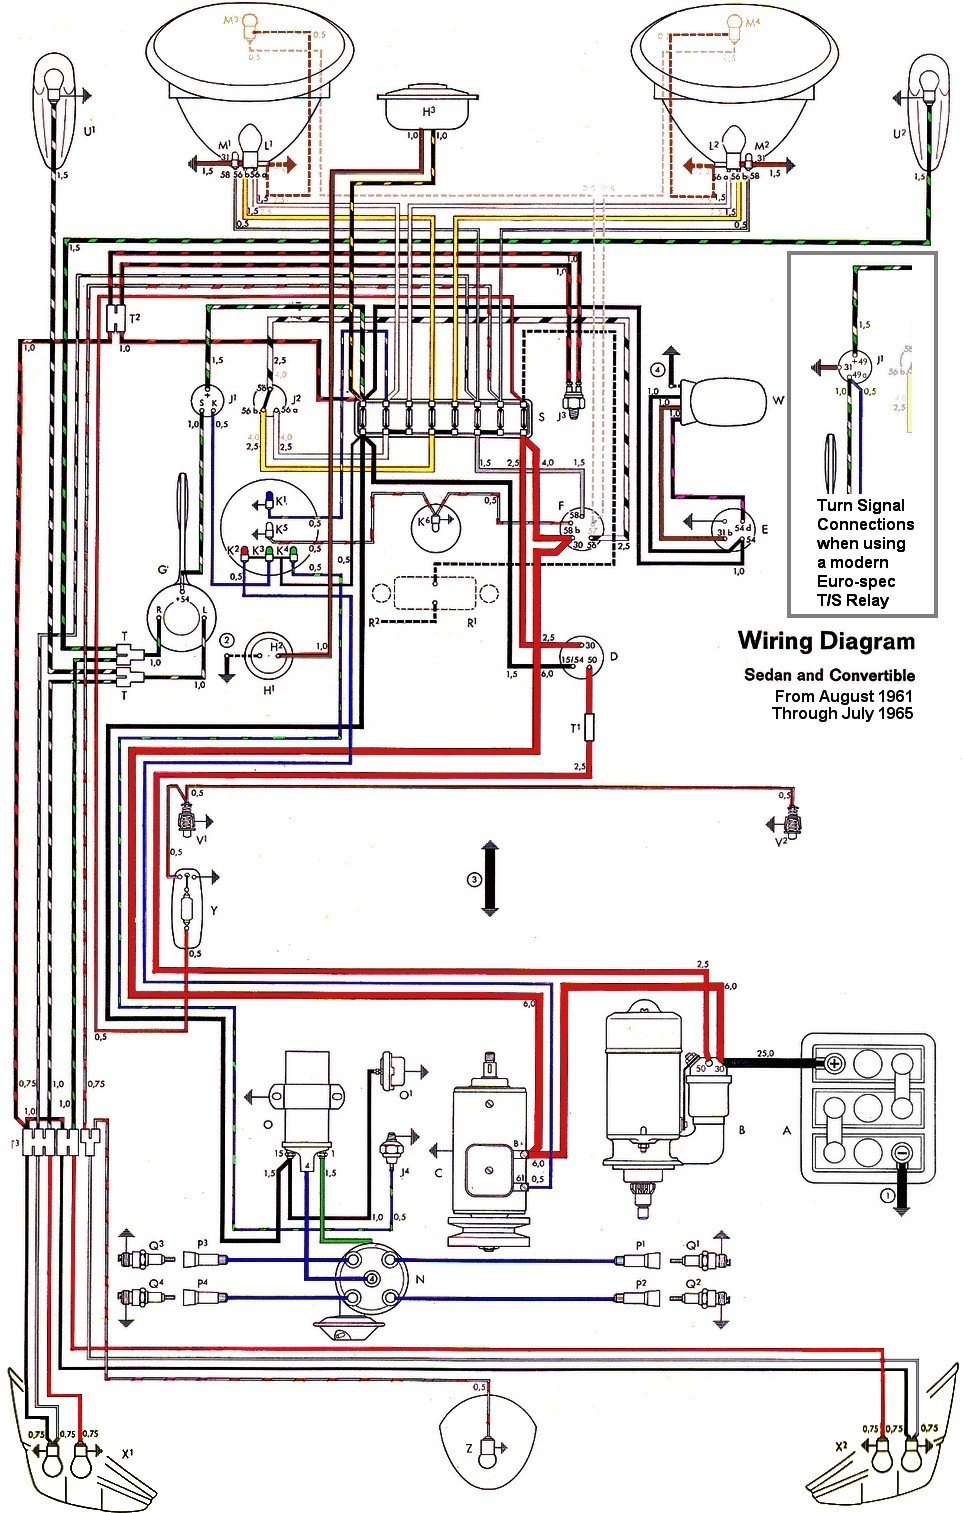 Type 1 Wiring Diagrams 1970 Chevelle Engine Diagram